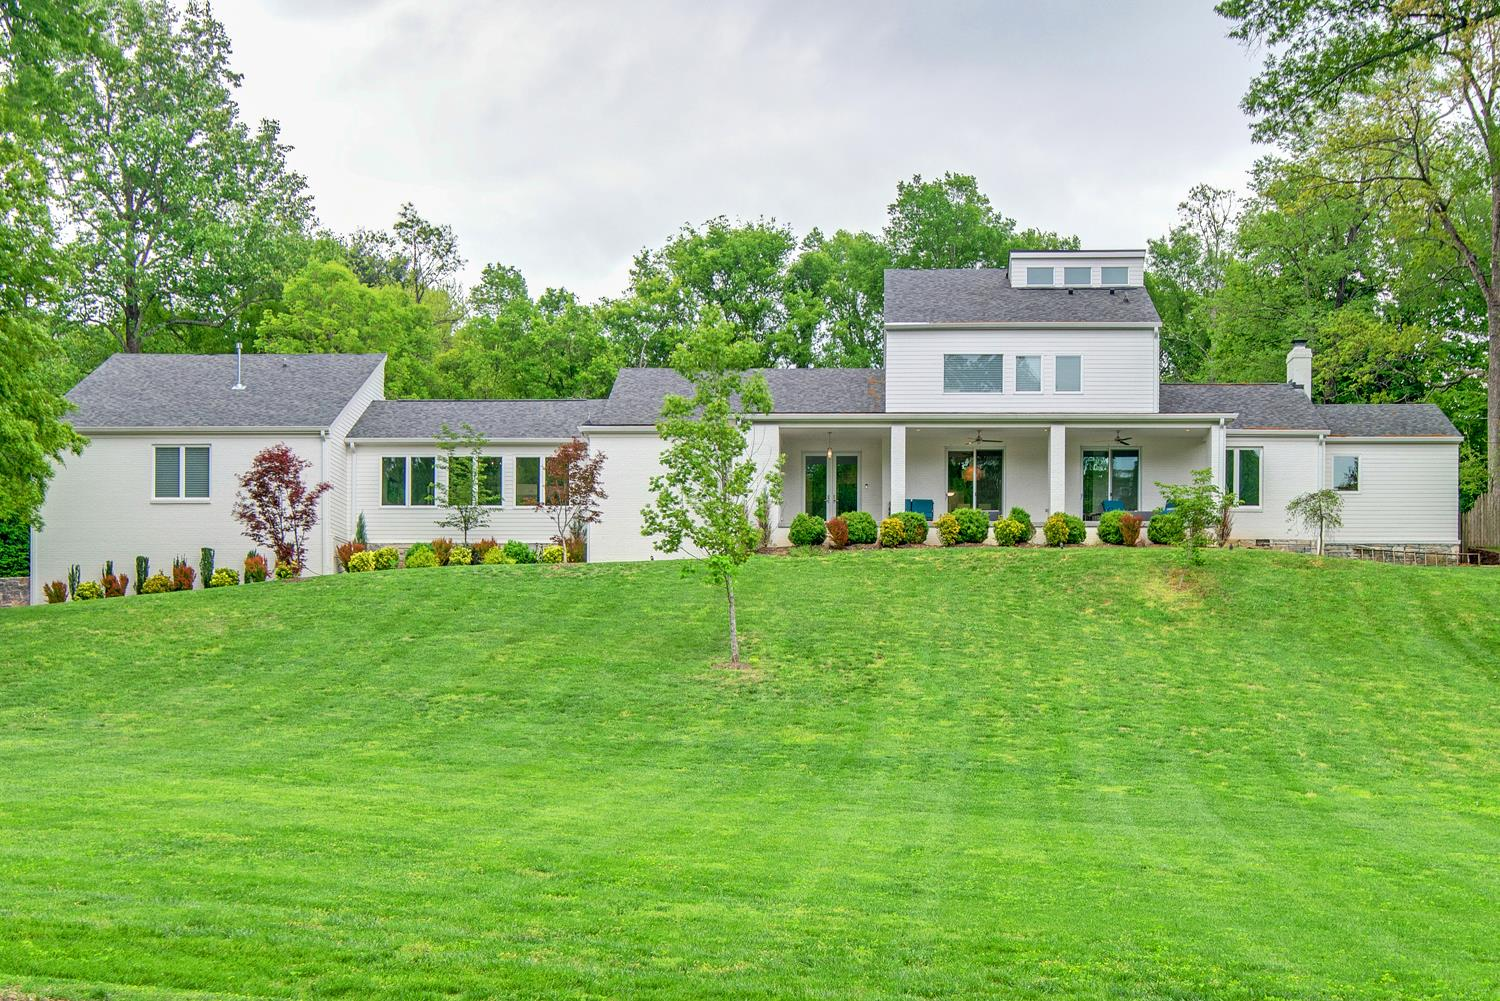 3420 Valley Brook Rd, Nashville - Green Hills, Tennessee